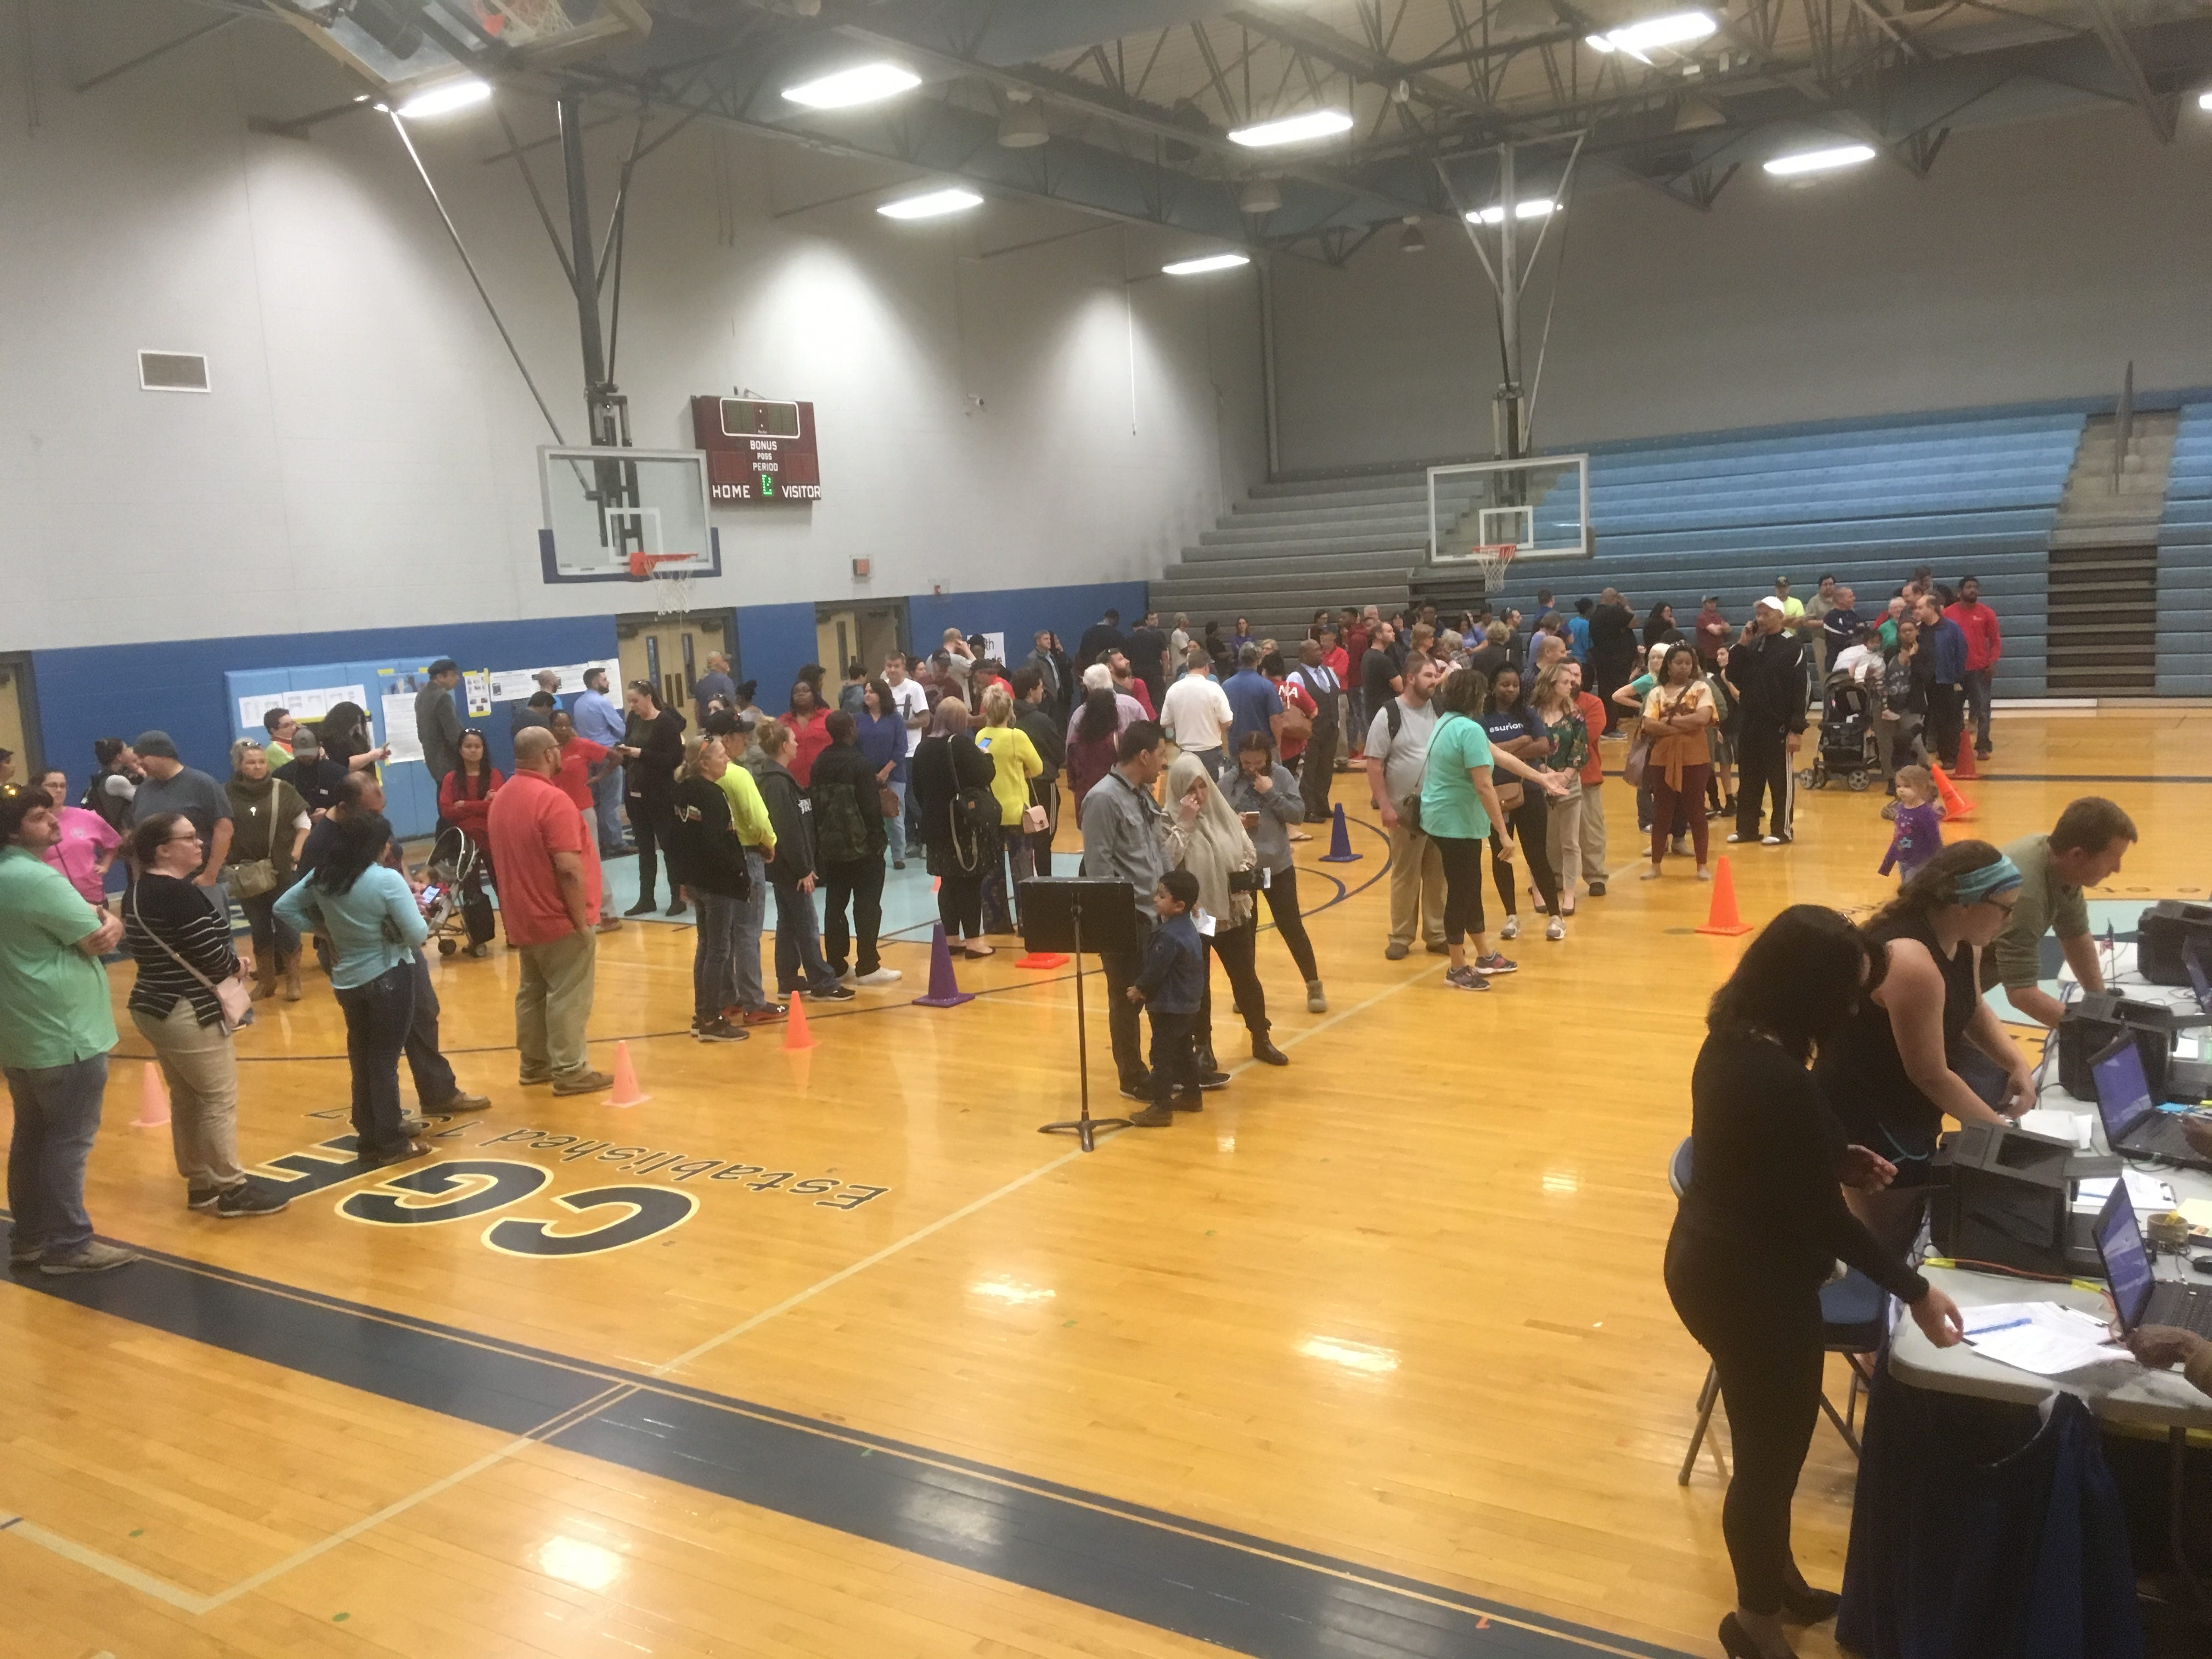 Voters packed the gym at Cedar Grove Elementary School in Smyrna around 4:45 p.m. on Tuesday, Nov. 6, 2018.